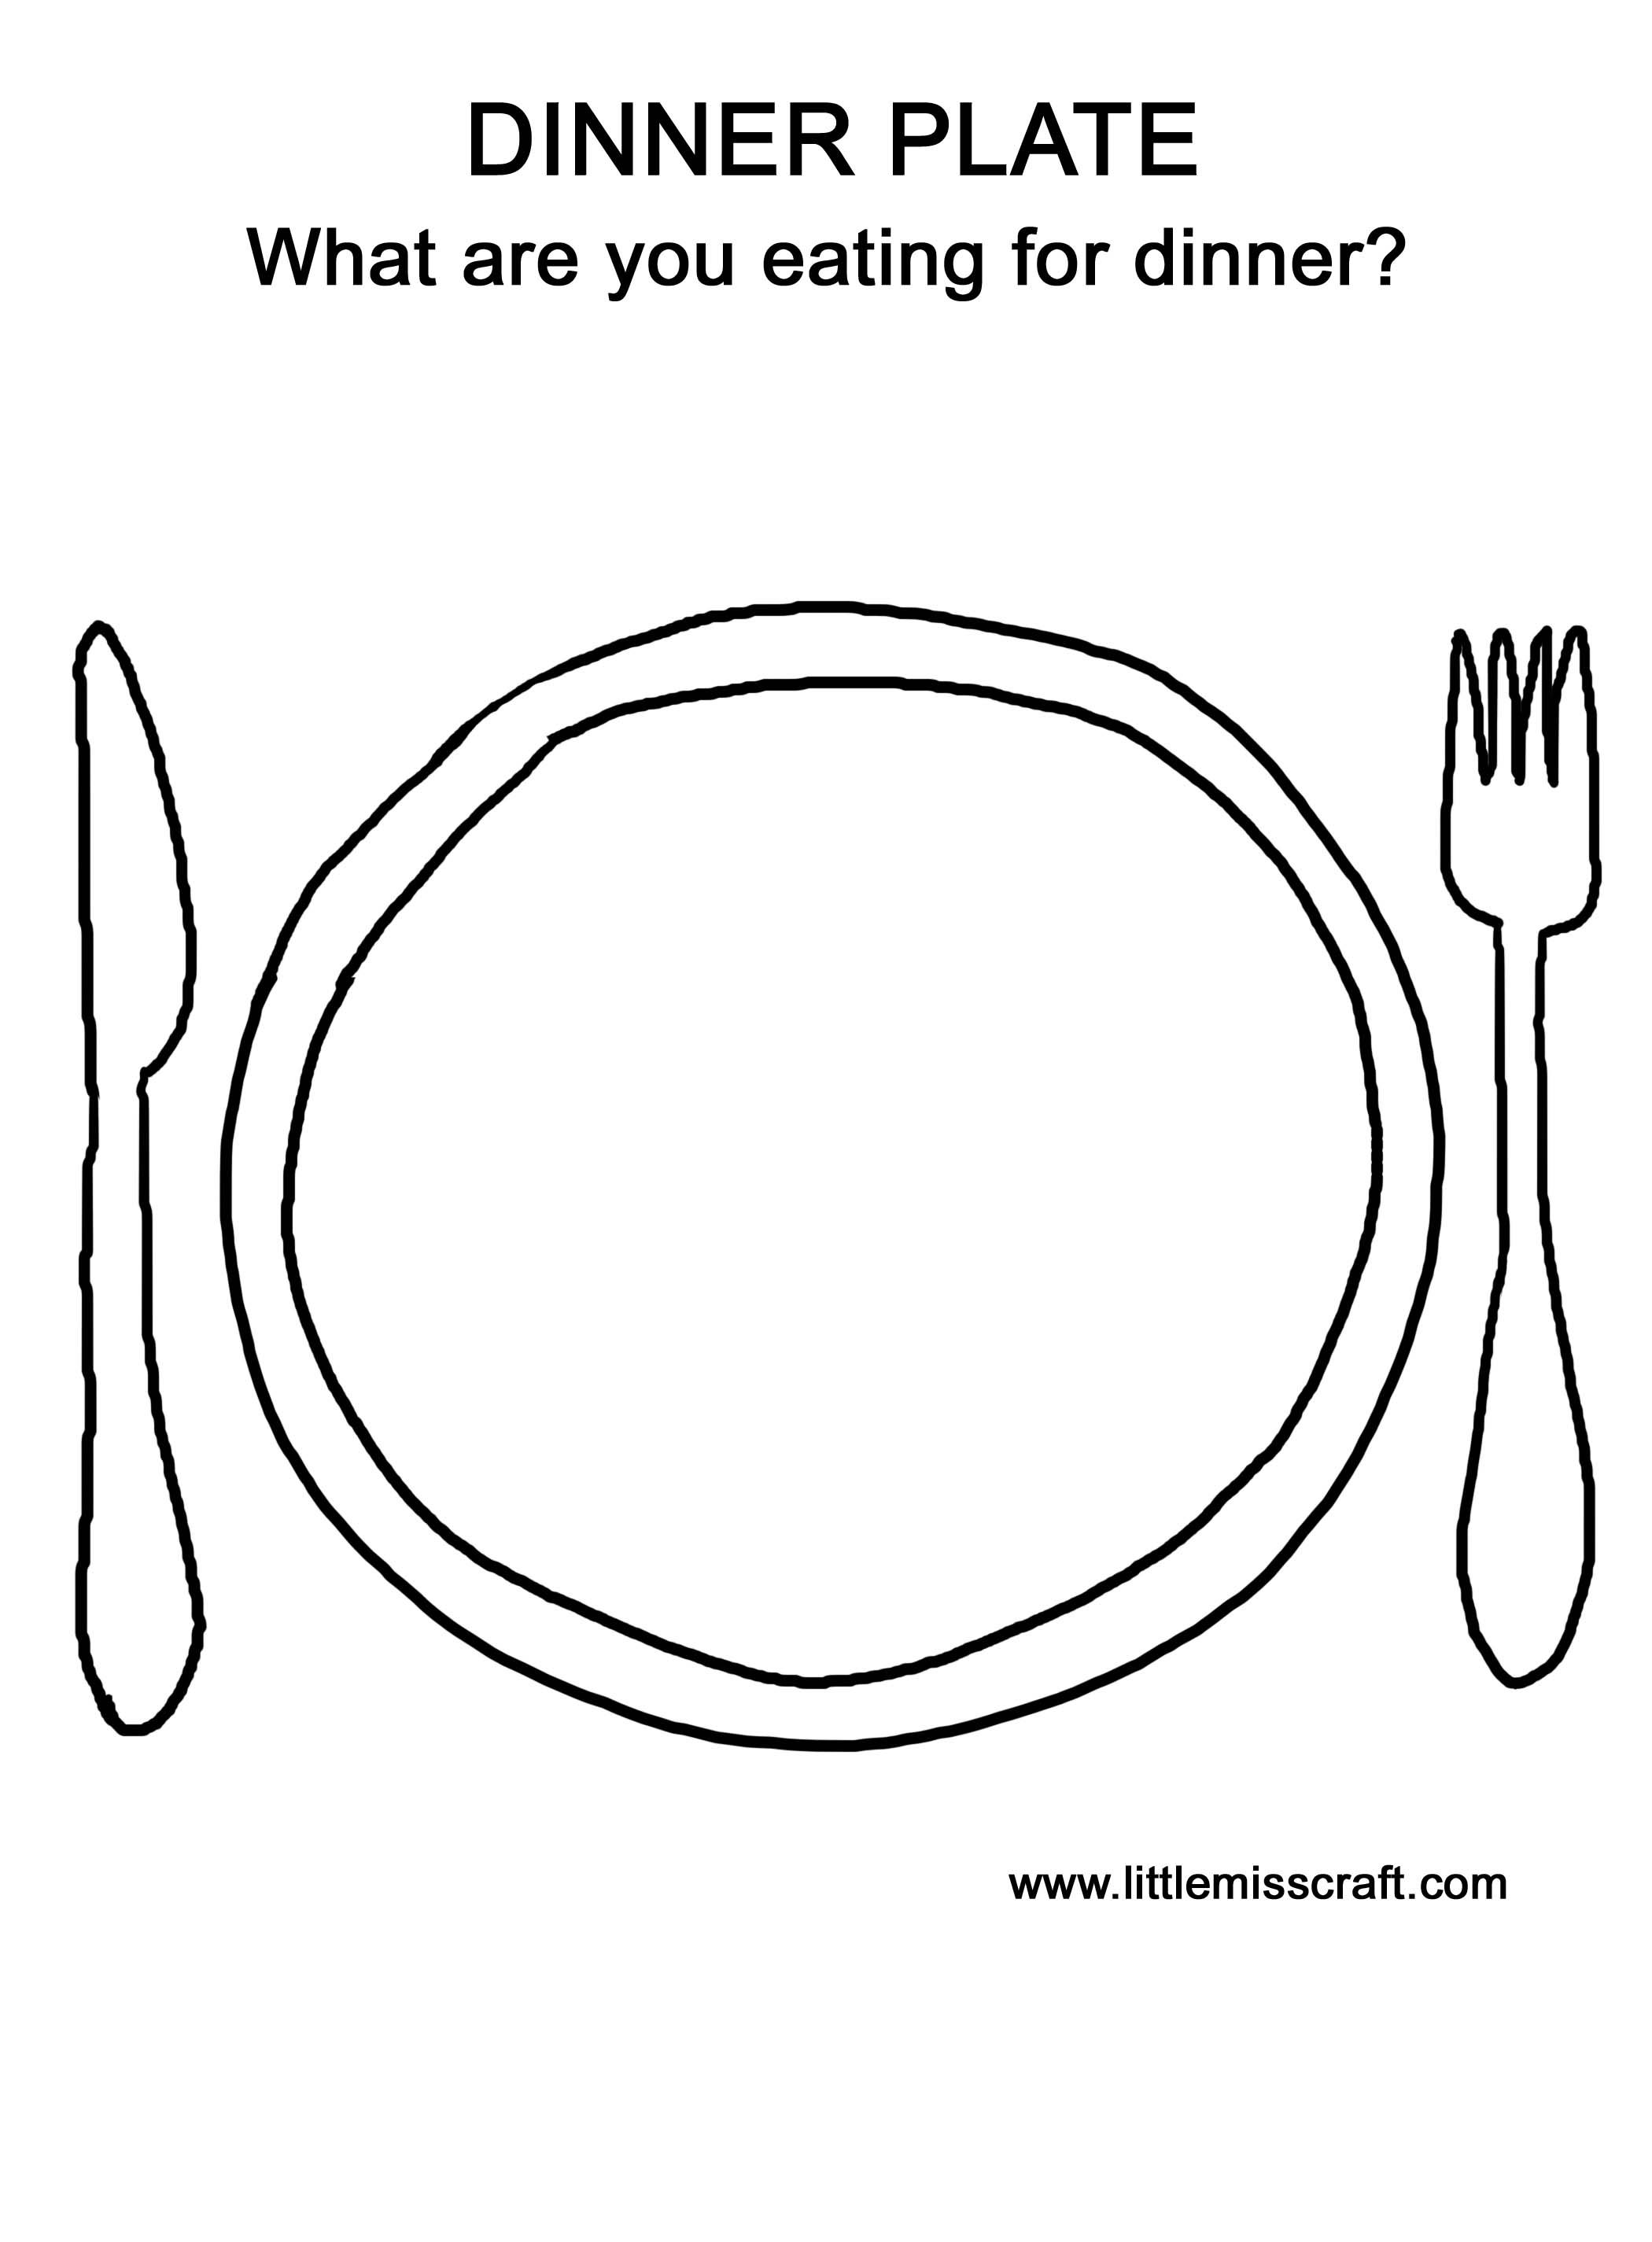 Printable coloring page as you prepare dinner the kids